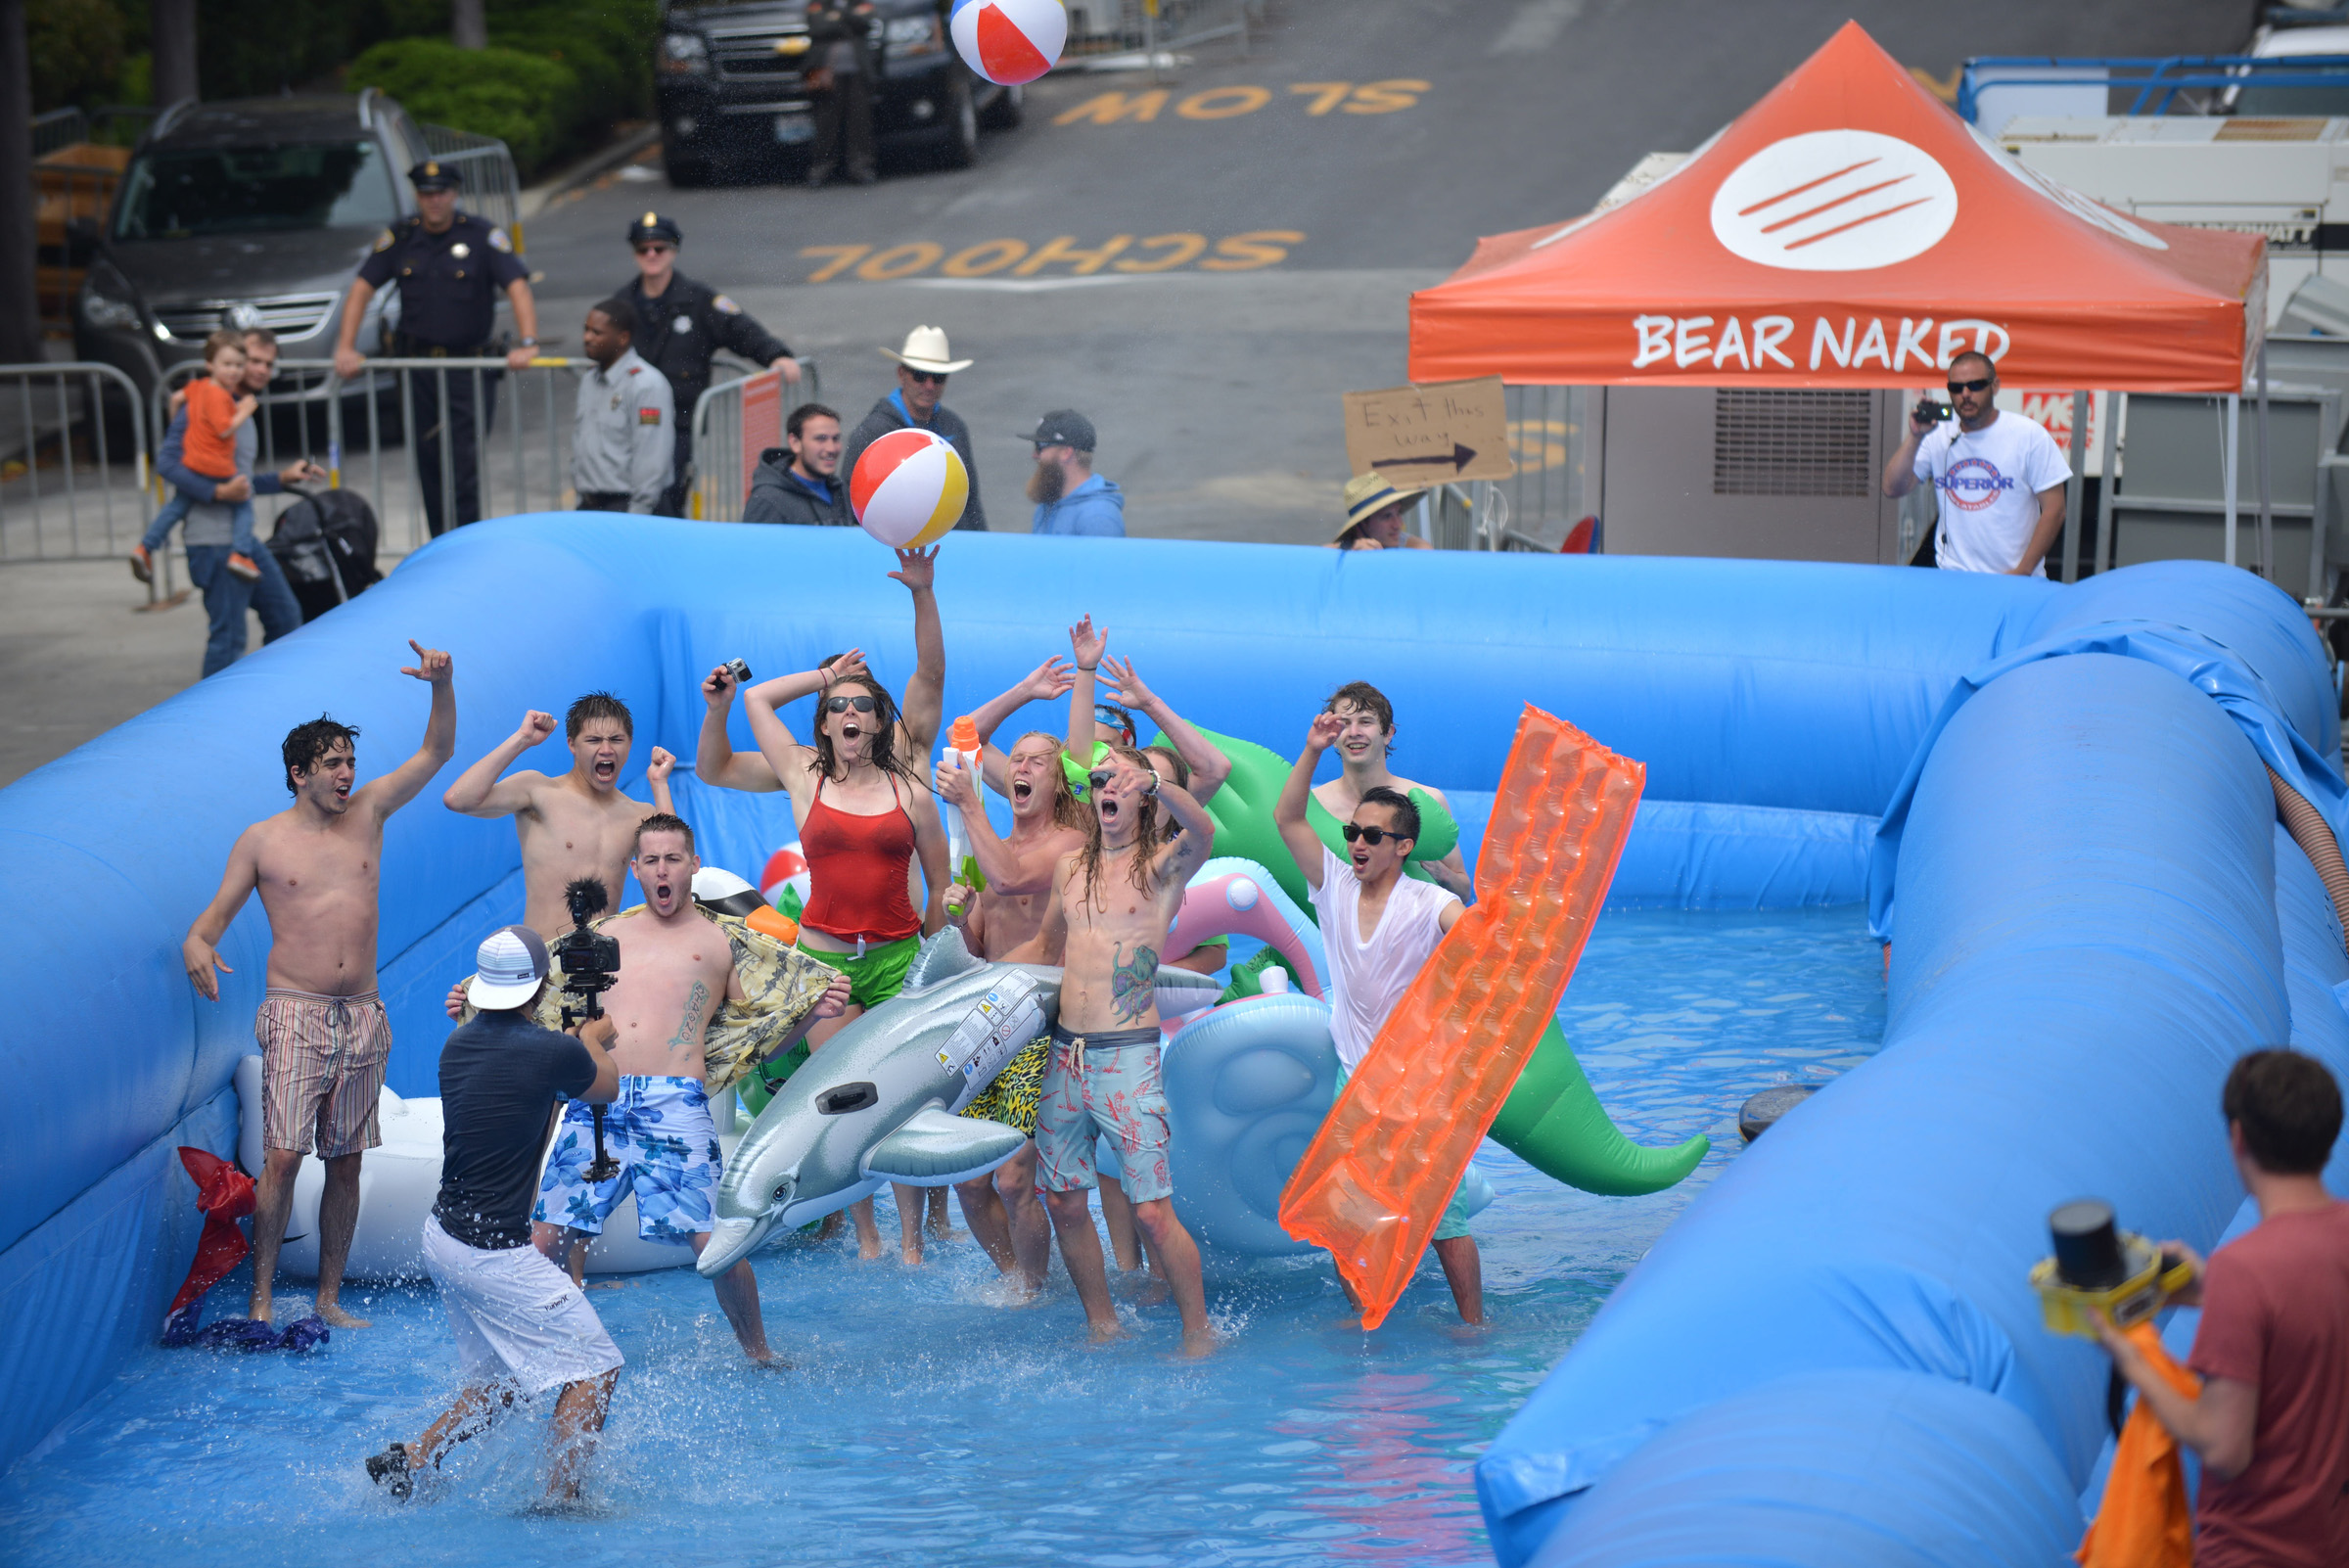 Adventure-lovers celebrate summer in San Francisco during a #chasethesun event fueled by Bear Naked Granola. (Photo by John Feria /AP Images for Bear Naked)